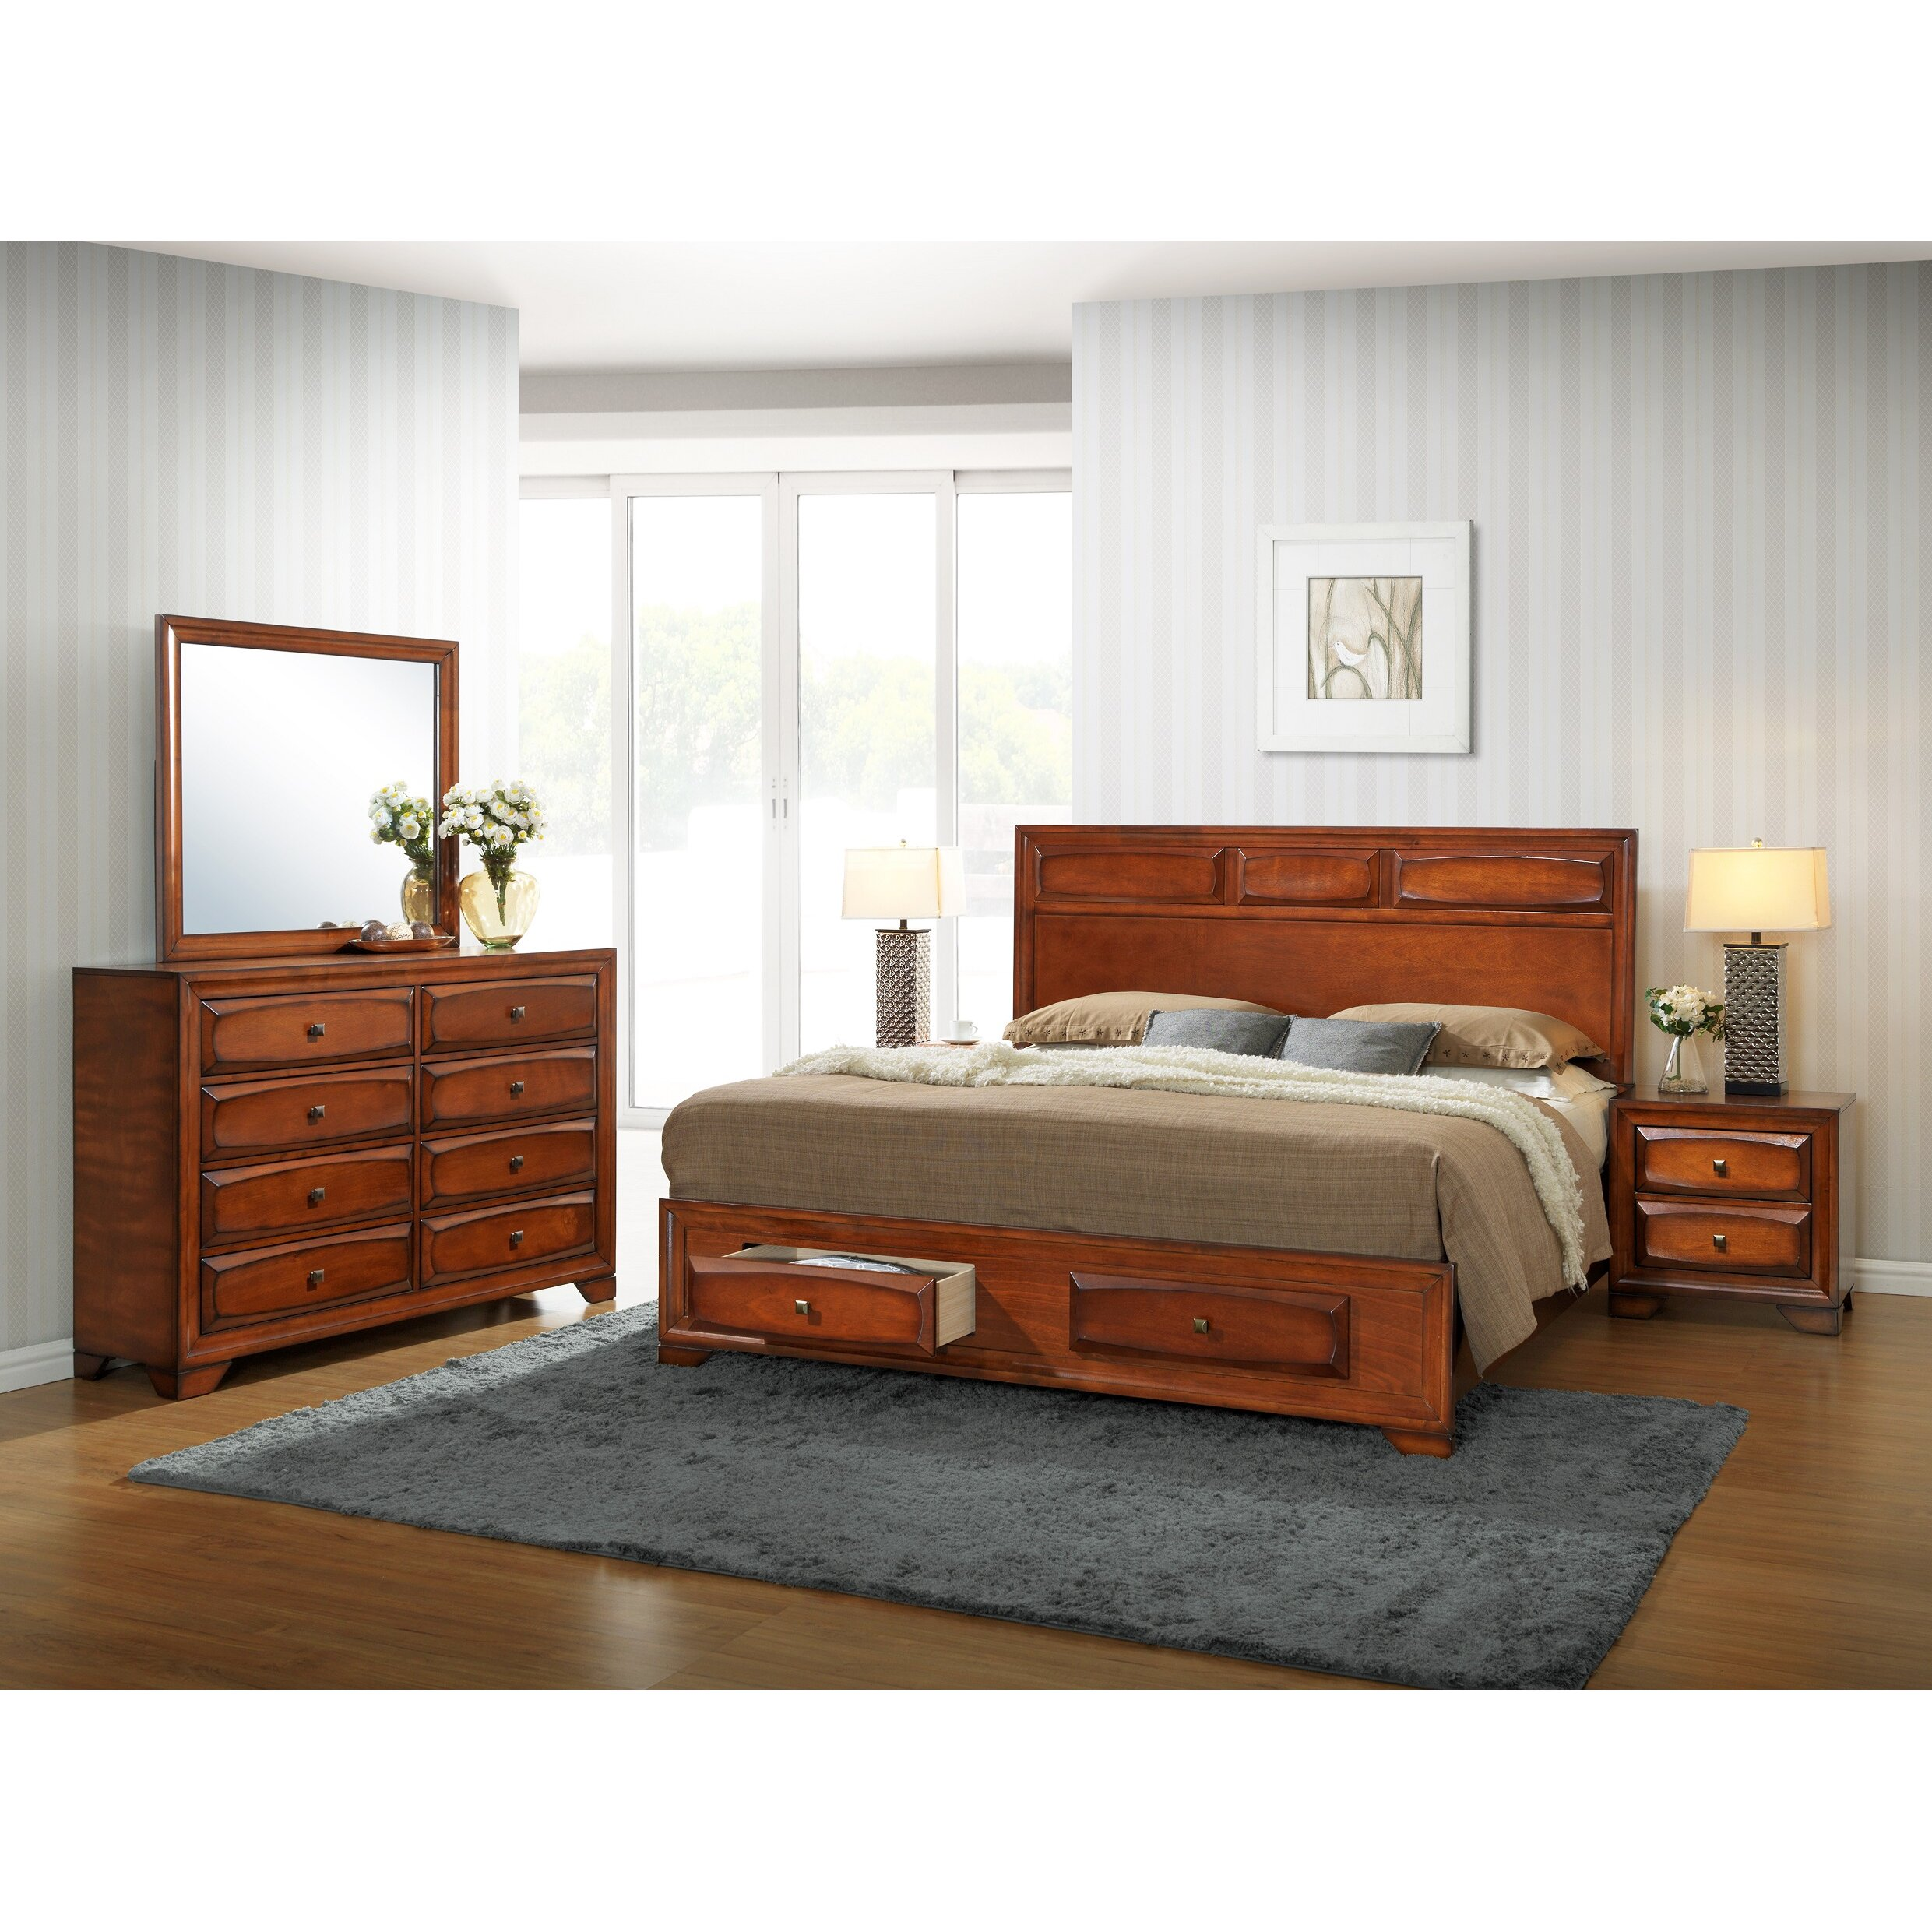 Furniture Store Oakland: Roundhill Furniture Oakland Platform Bedroom Set